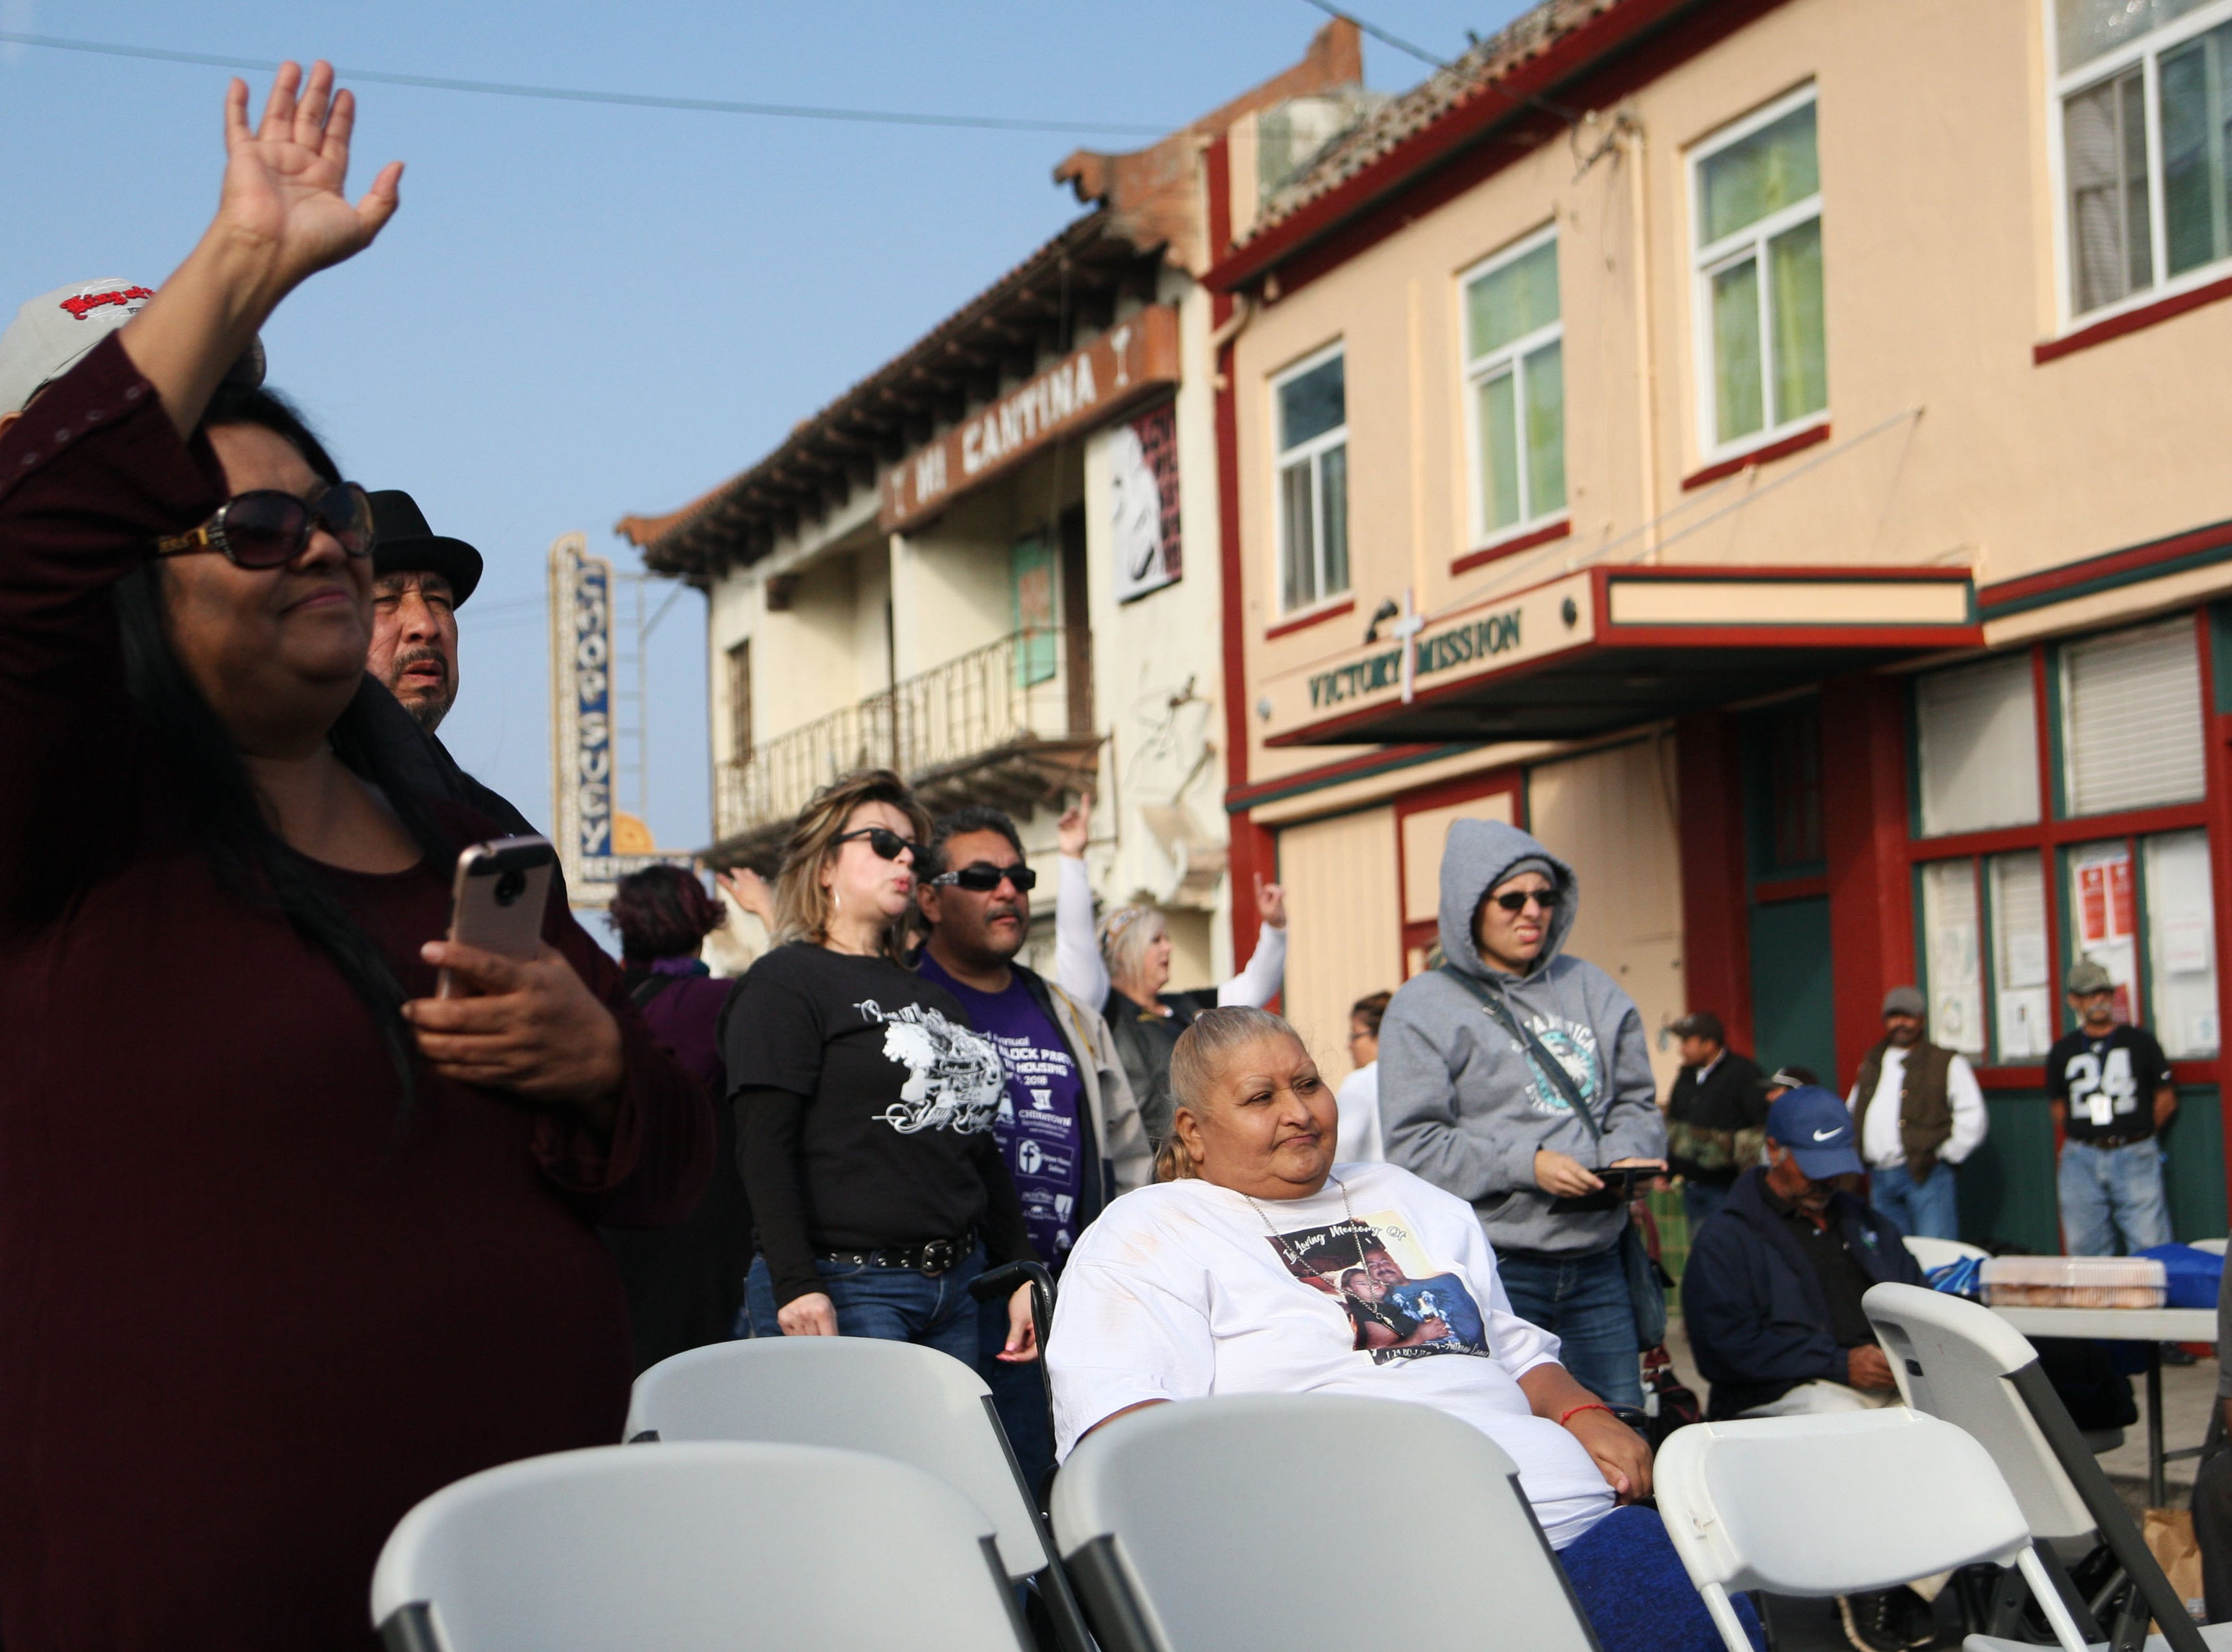 Salinas residents flocked to the Chinatown block party. Many sat and enjoyed the live bands while others raised their hands for Jesus in response to the band's request.